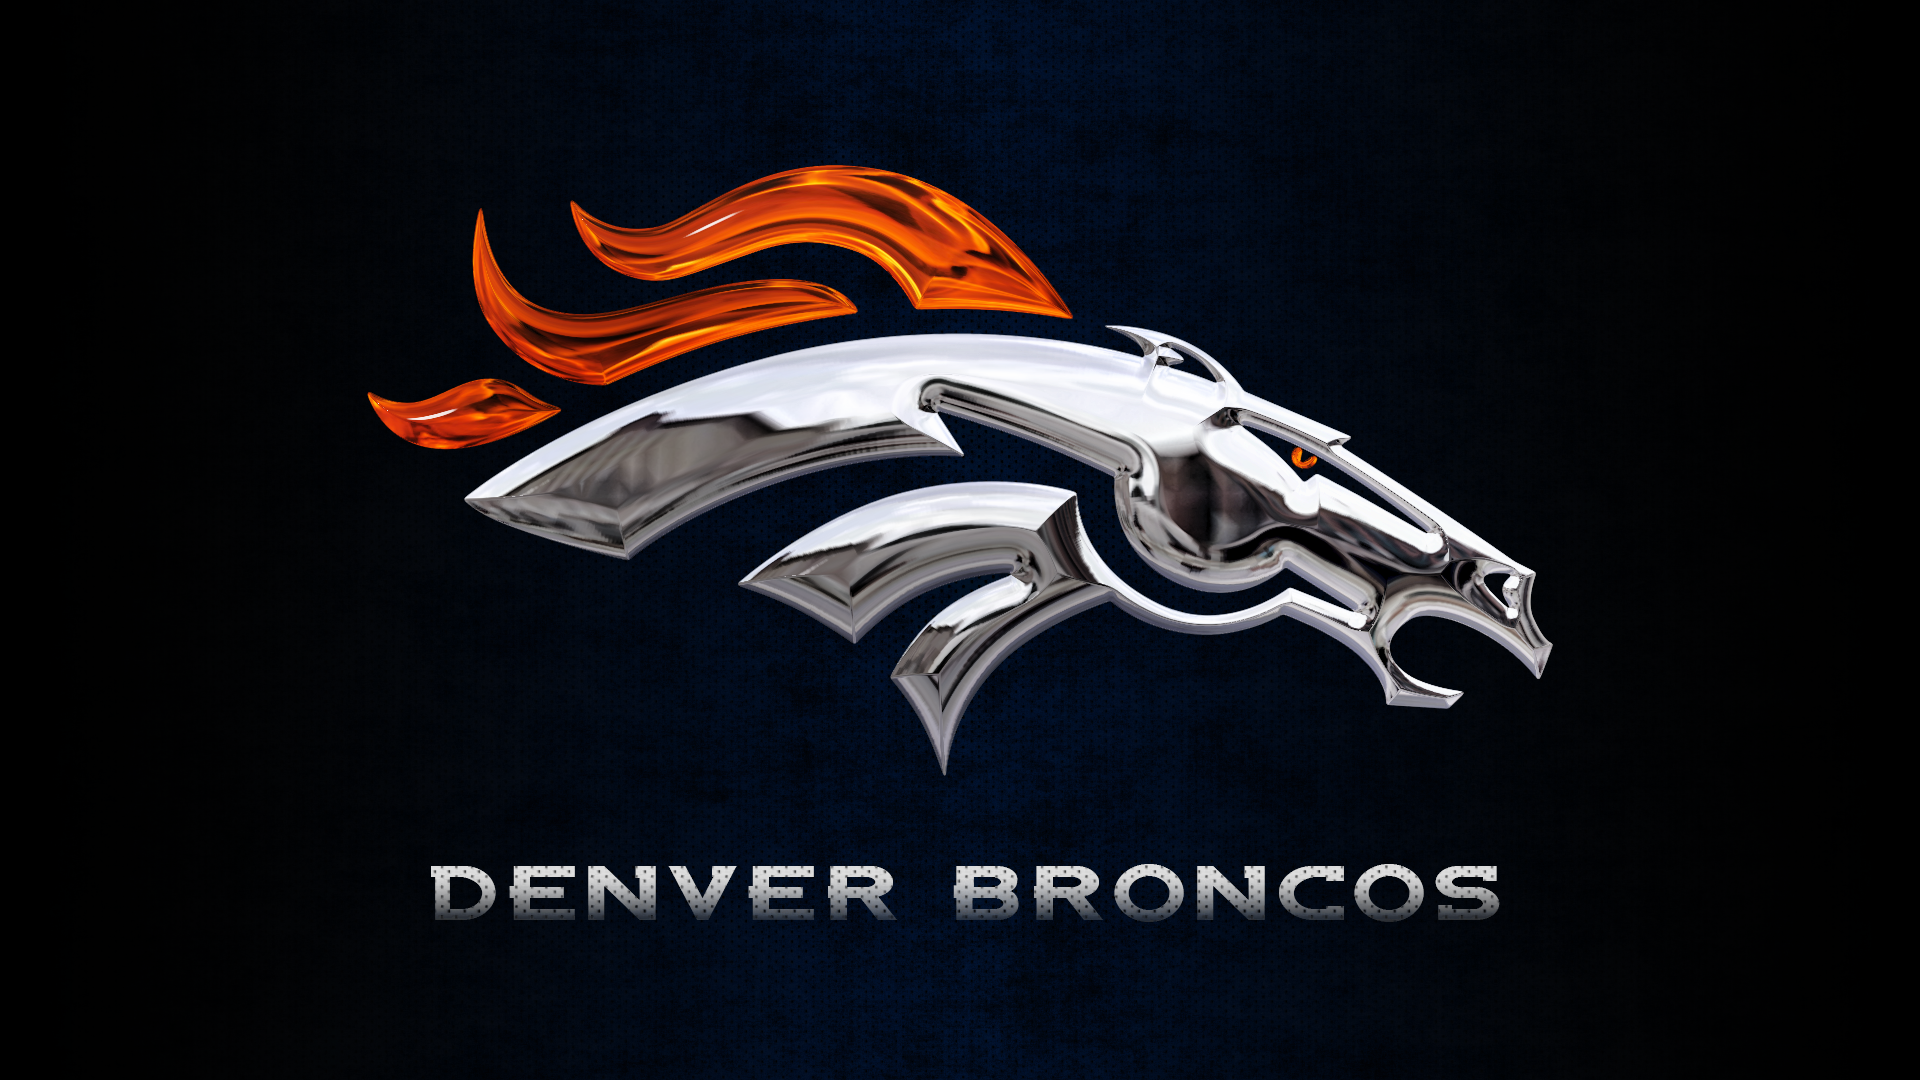 denver broncos desktop wallpaper  wallpaper.wiki-Denver-Broncos-Wallpapers-PIC-WPC008399 | wallpaper.wiki